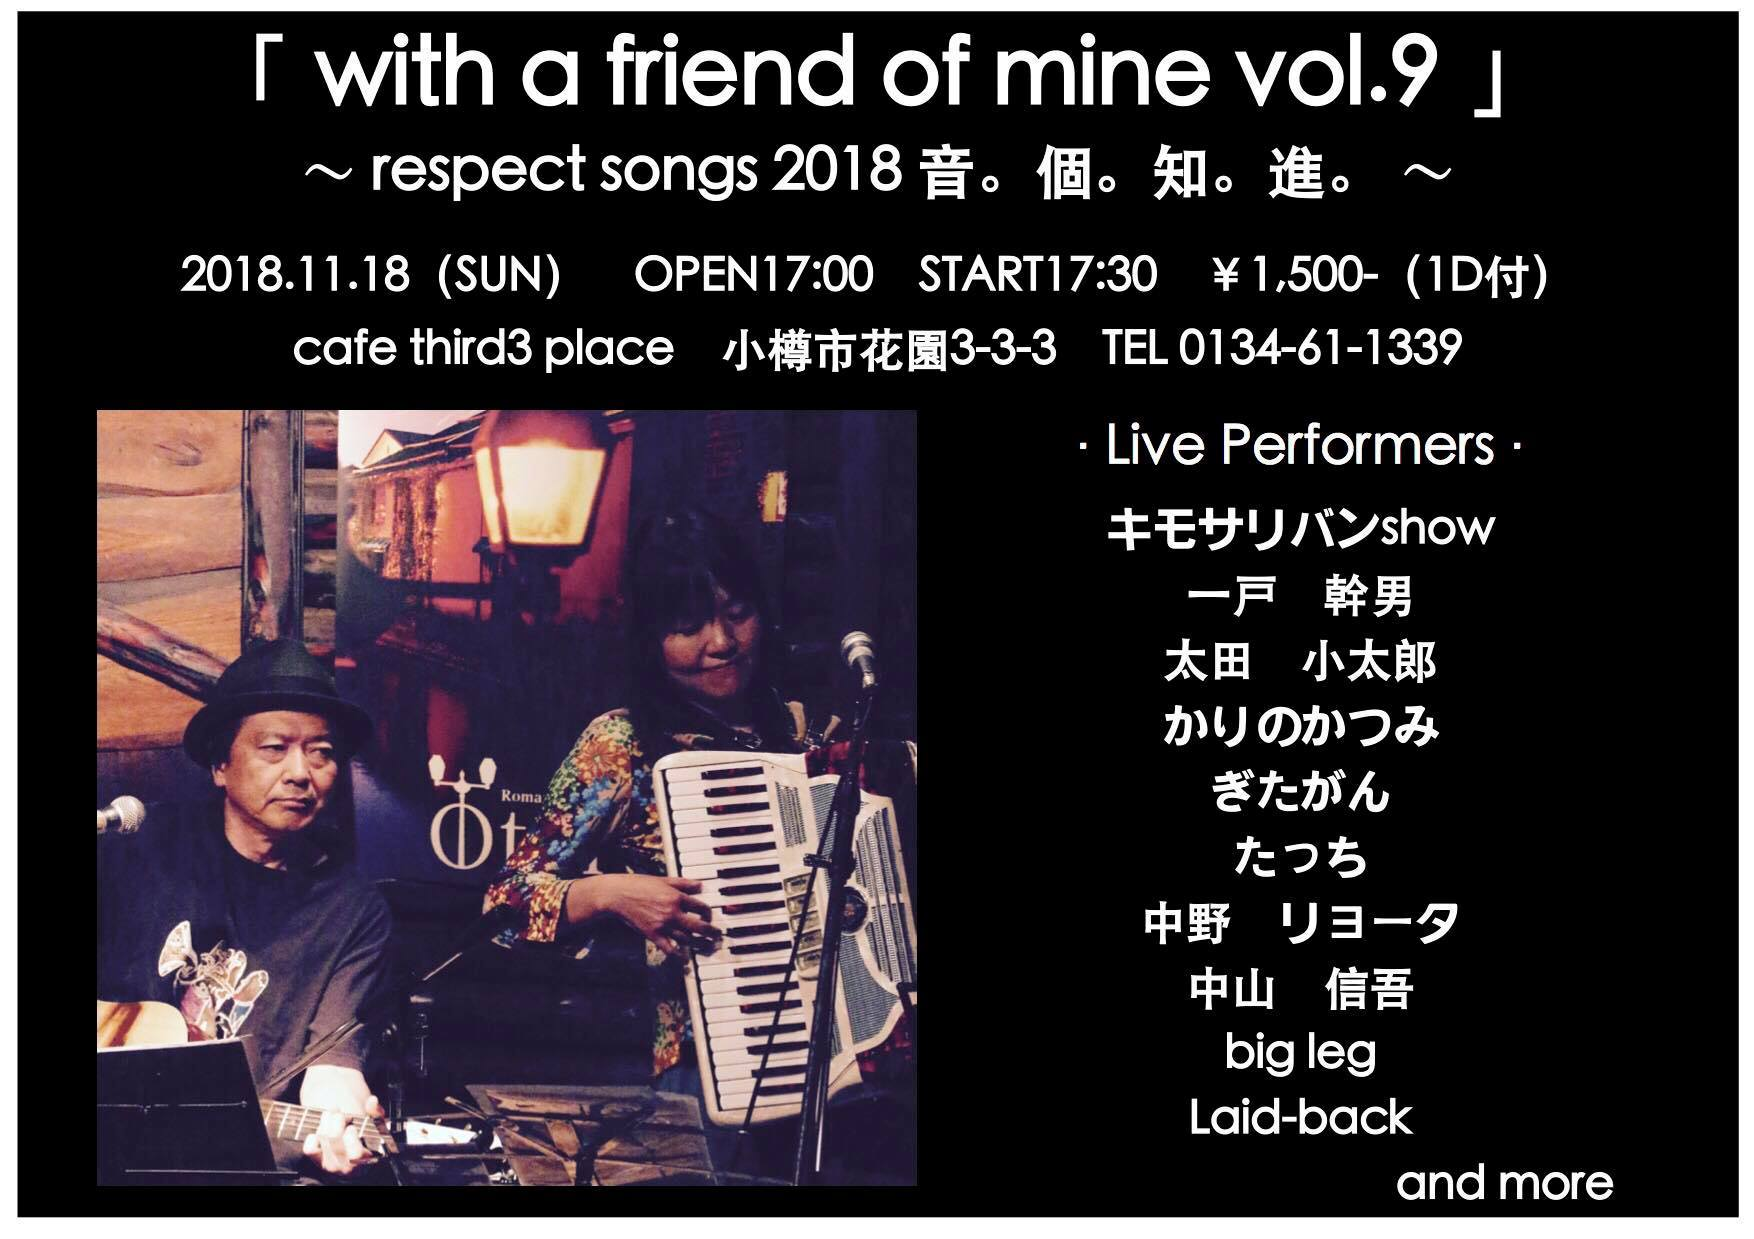 ◆with a friend of mine vol.9に出演します!(注*なまらやLIVEではありません)_d0154687_19153390.jpg